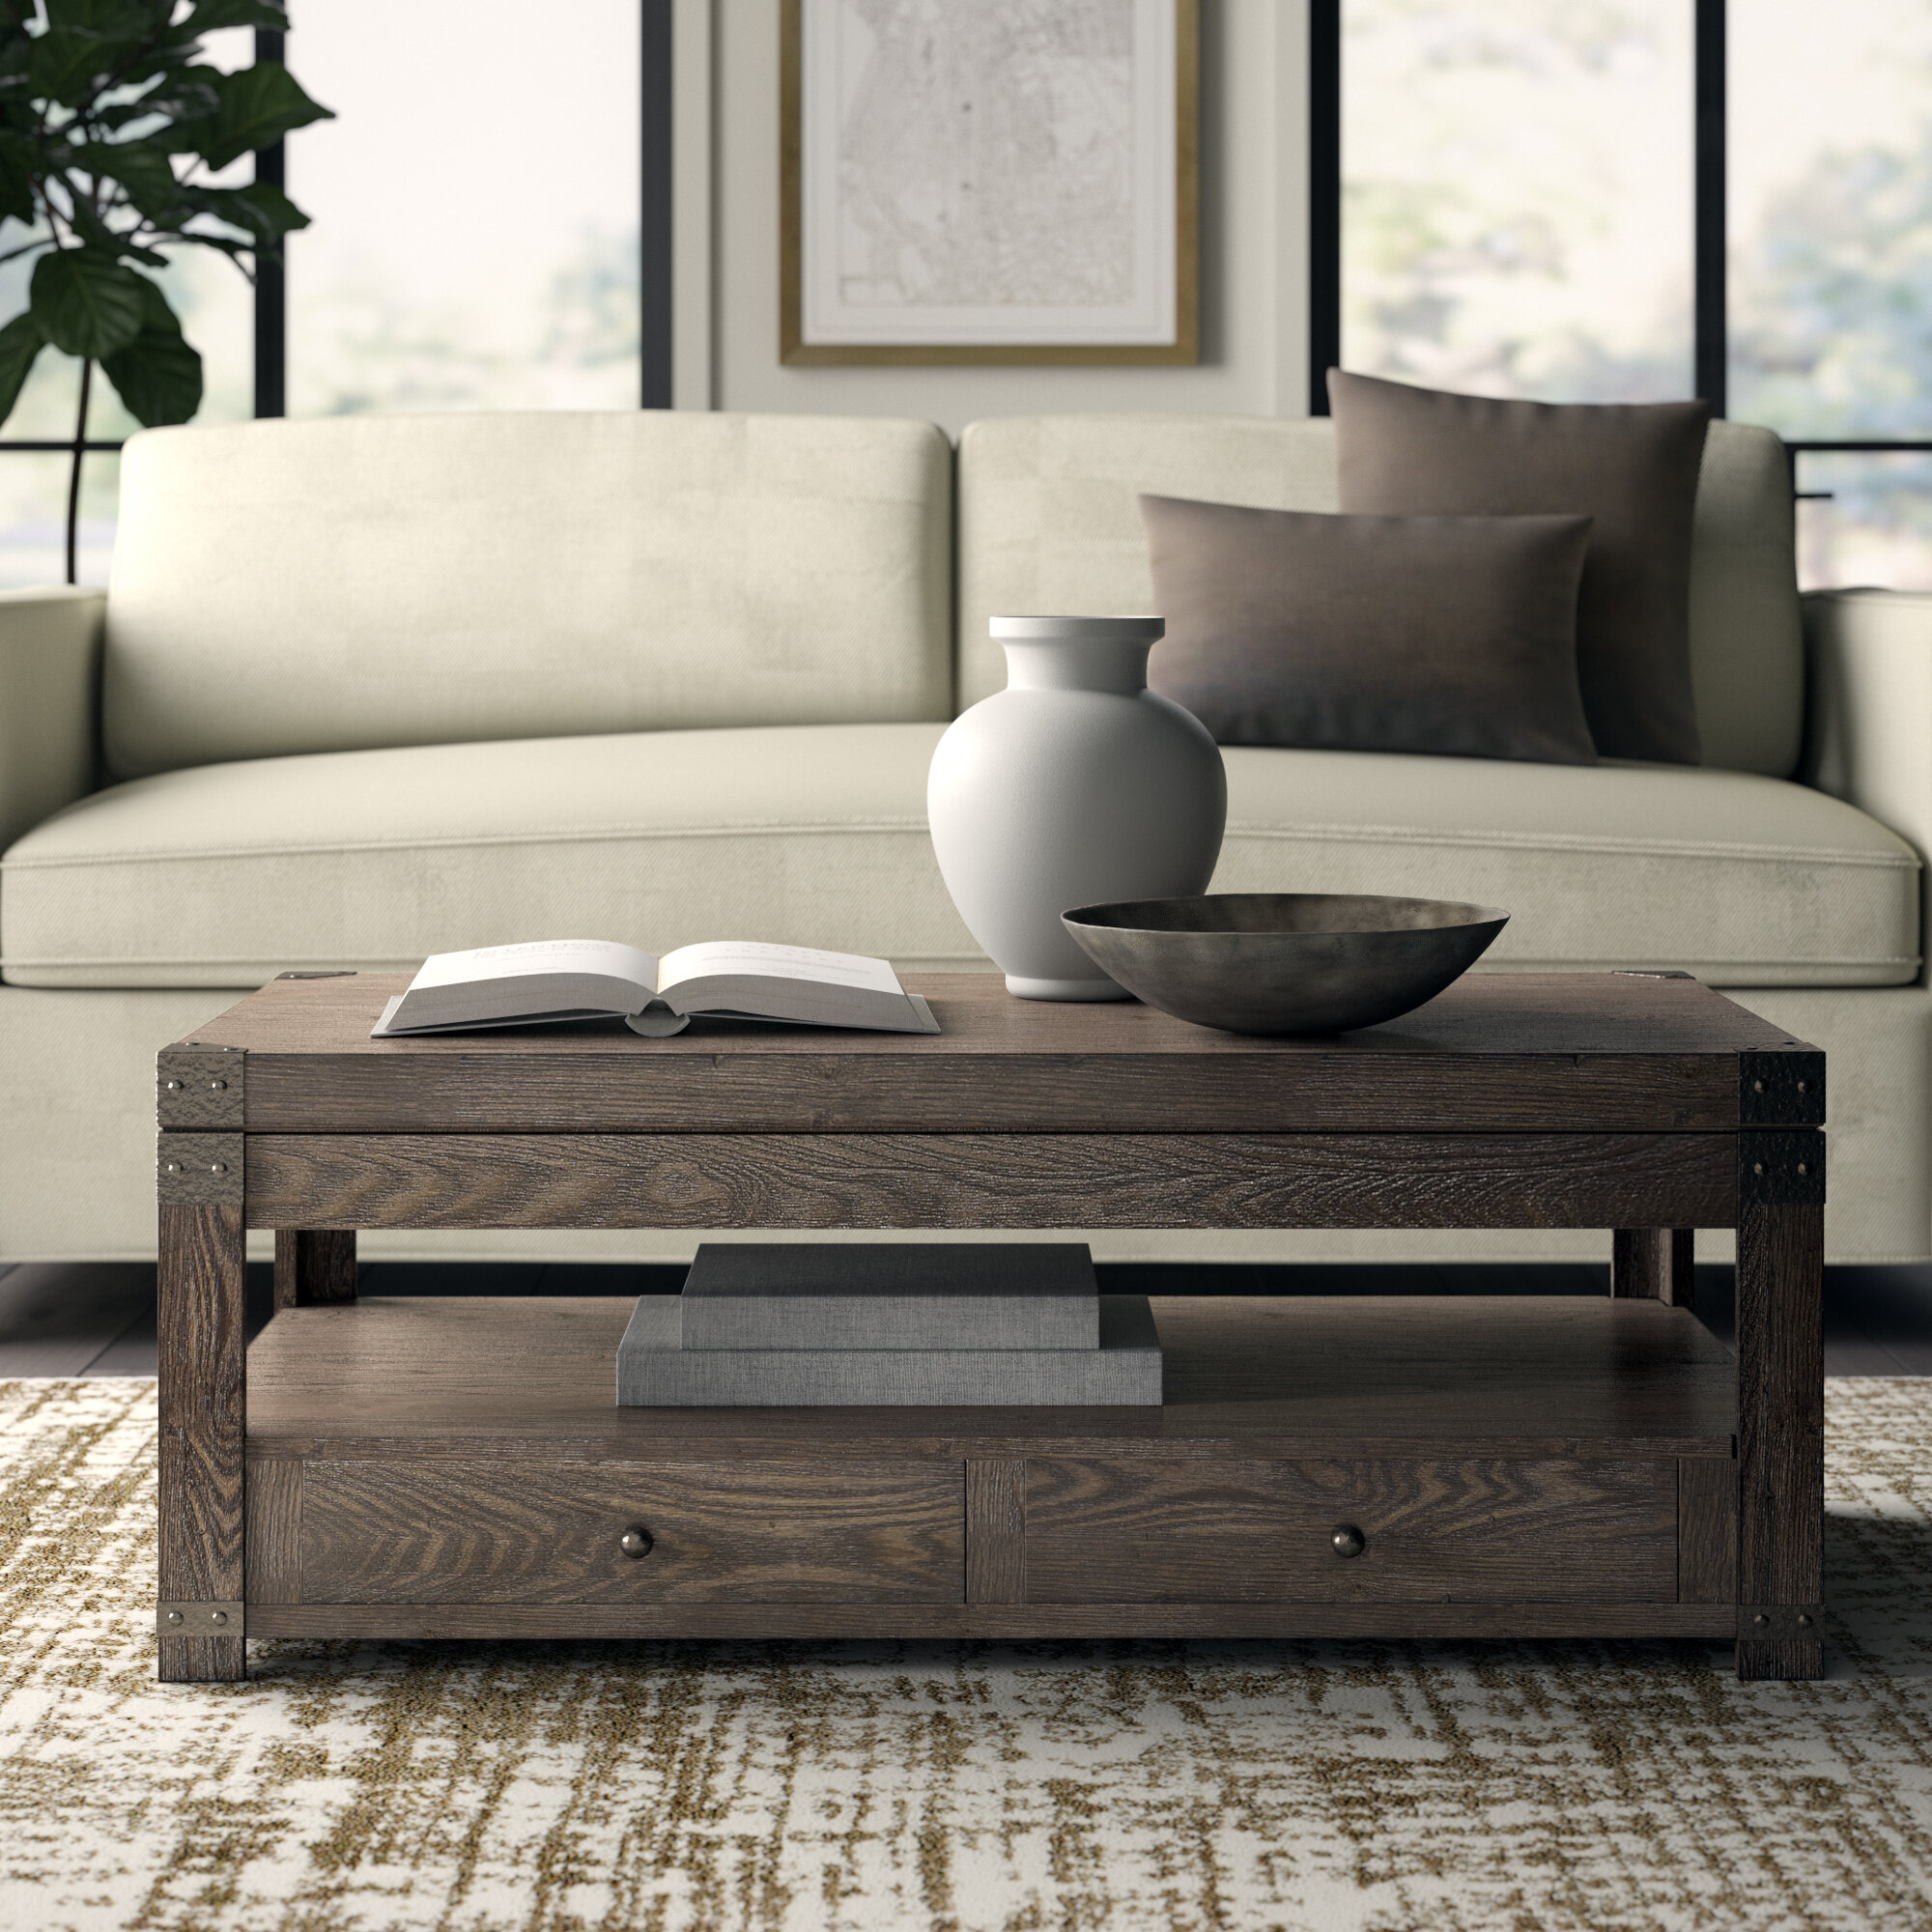 Lift Top Coffee Table.Bryan Lift Top Coffee Table